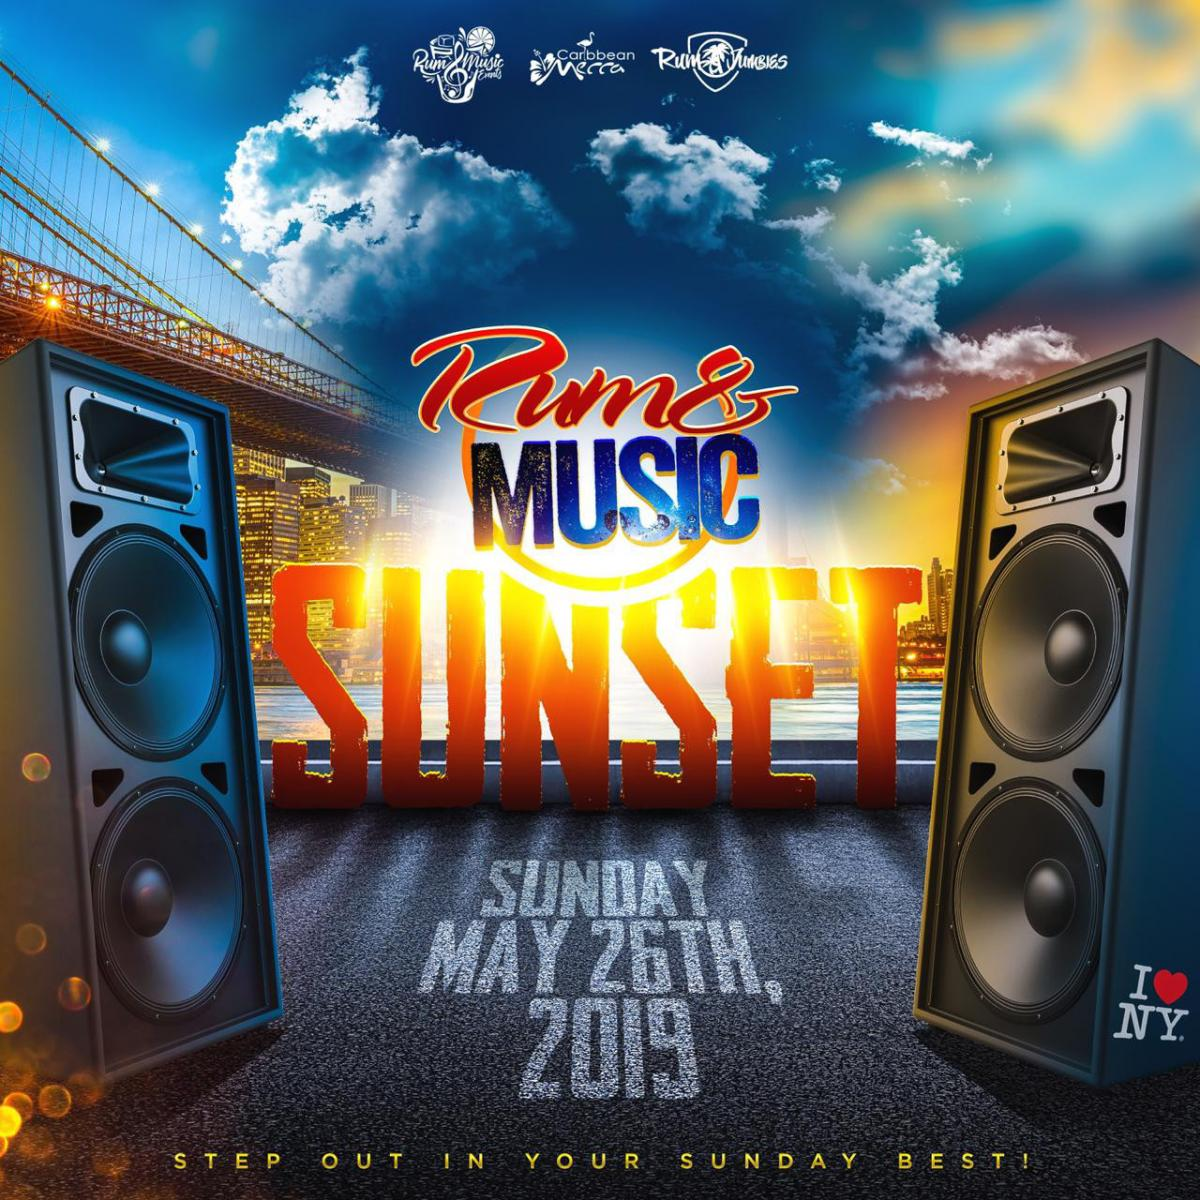 Rum and Music SUNSET flyer or graphic.